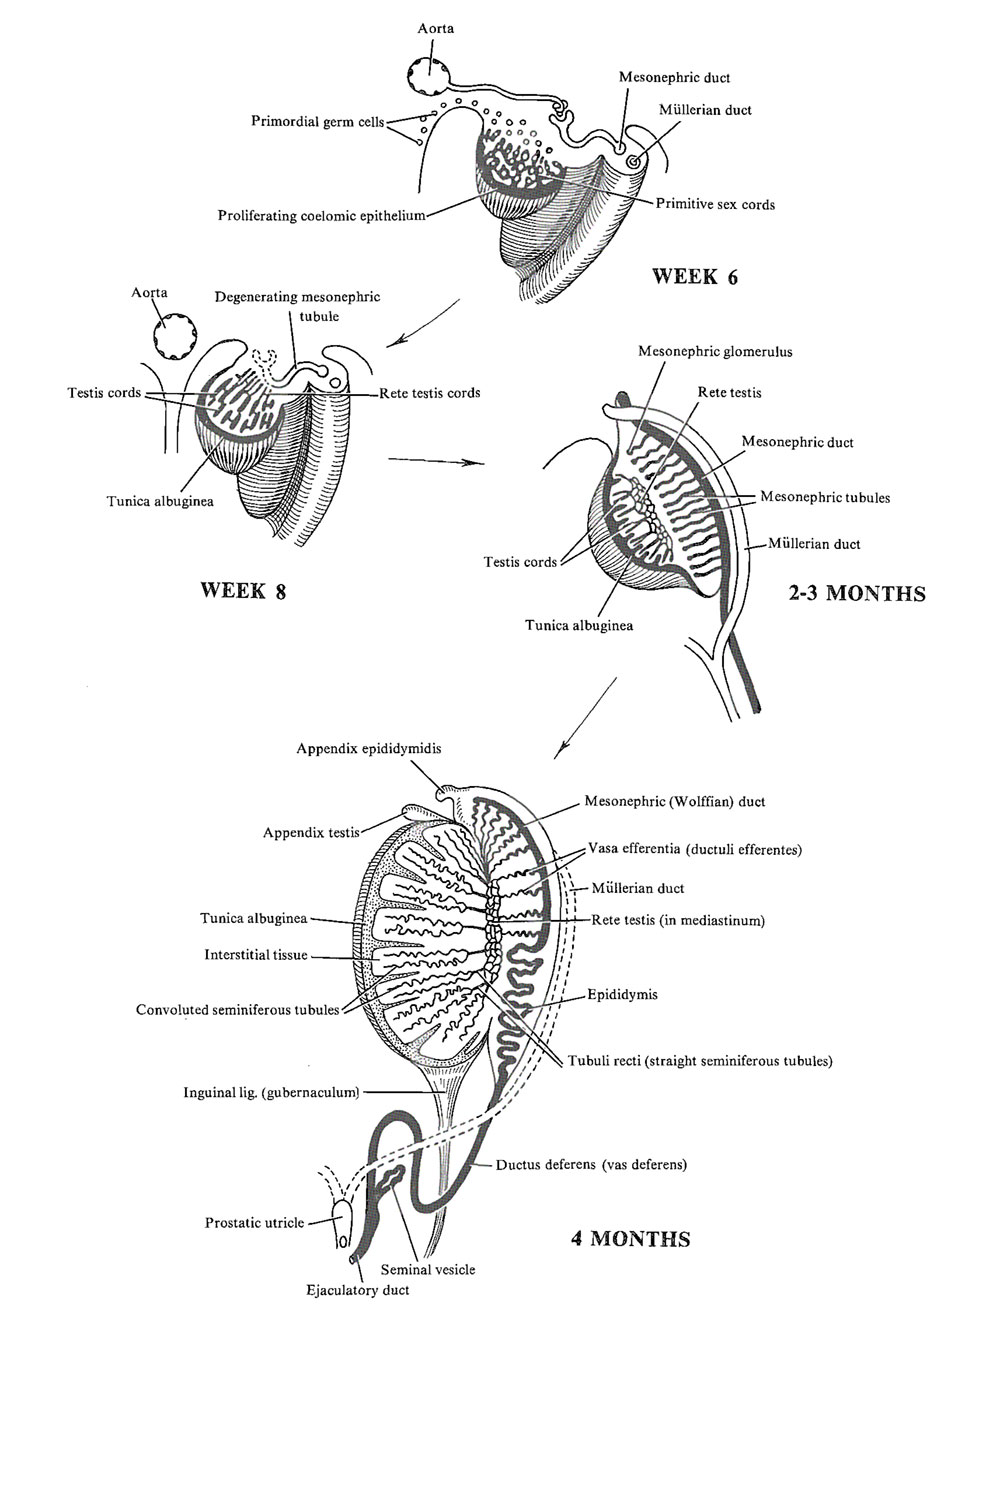 development of the testis: image #1